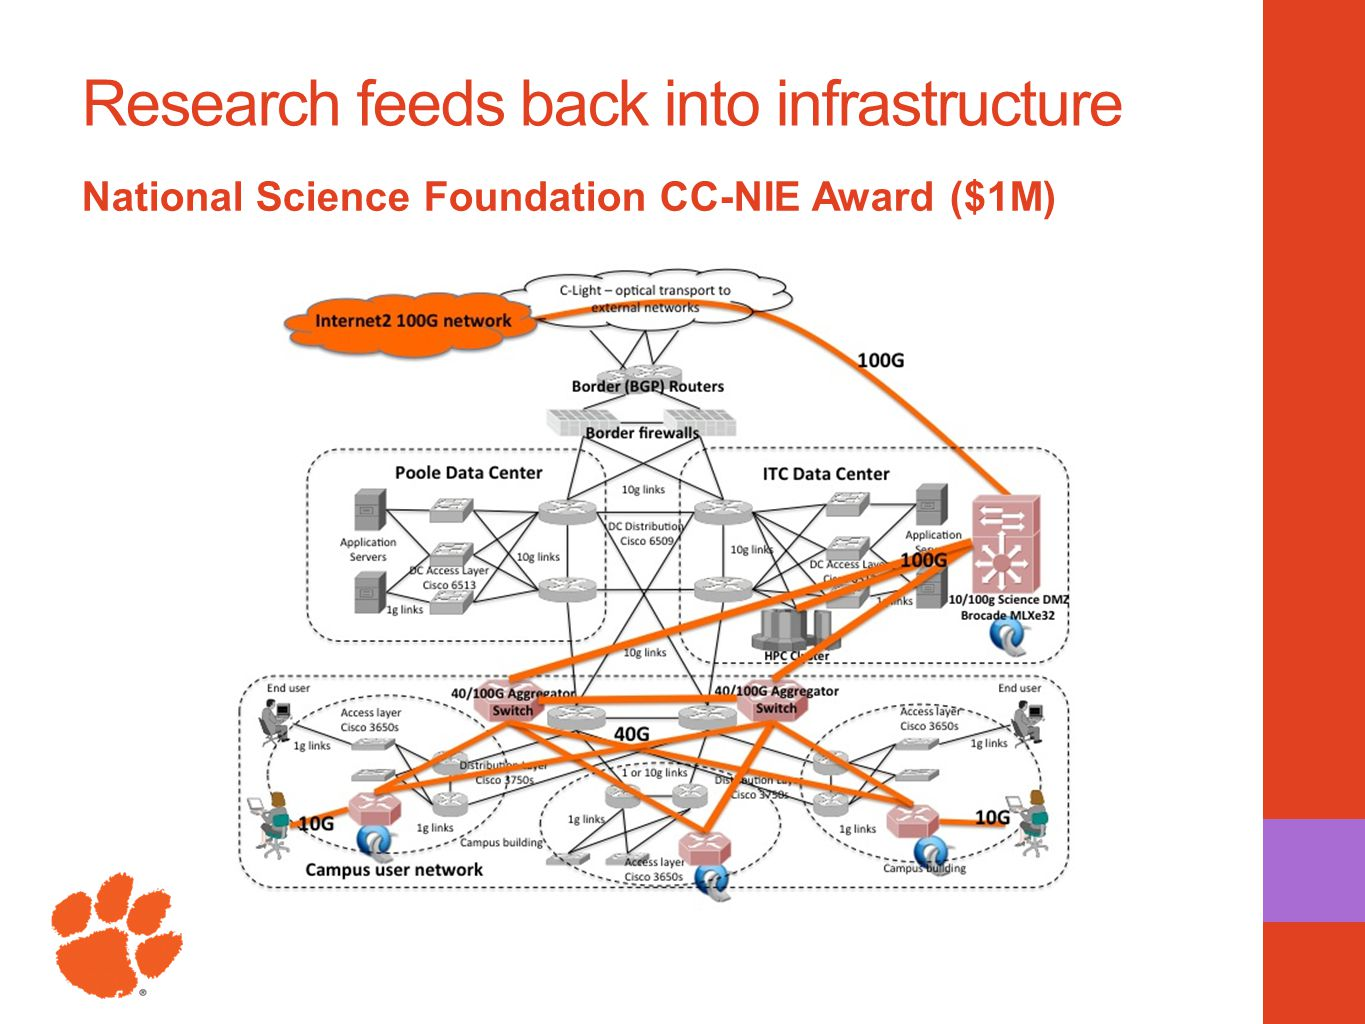 Research feeds back into infrastructure National Science Foundation CC-NIE Award ($1M)